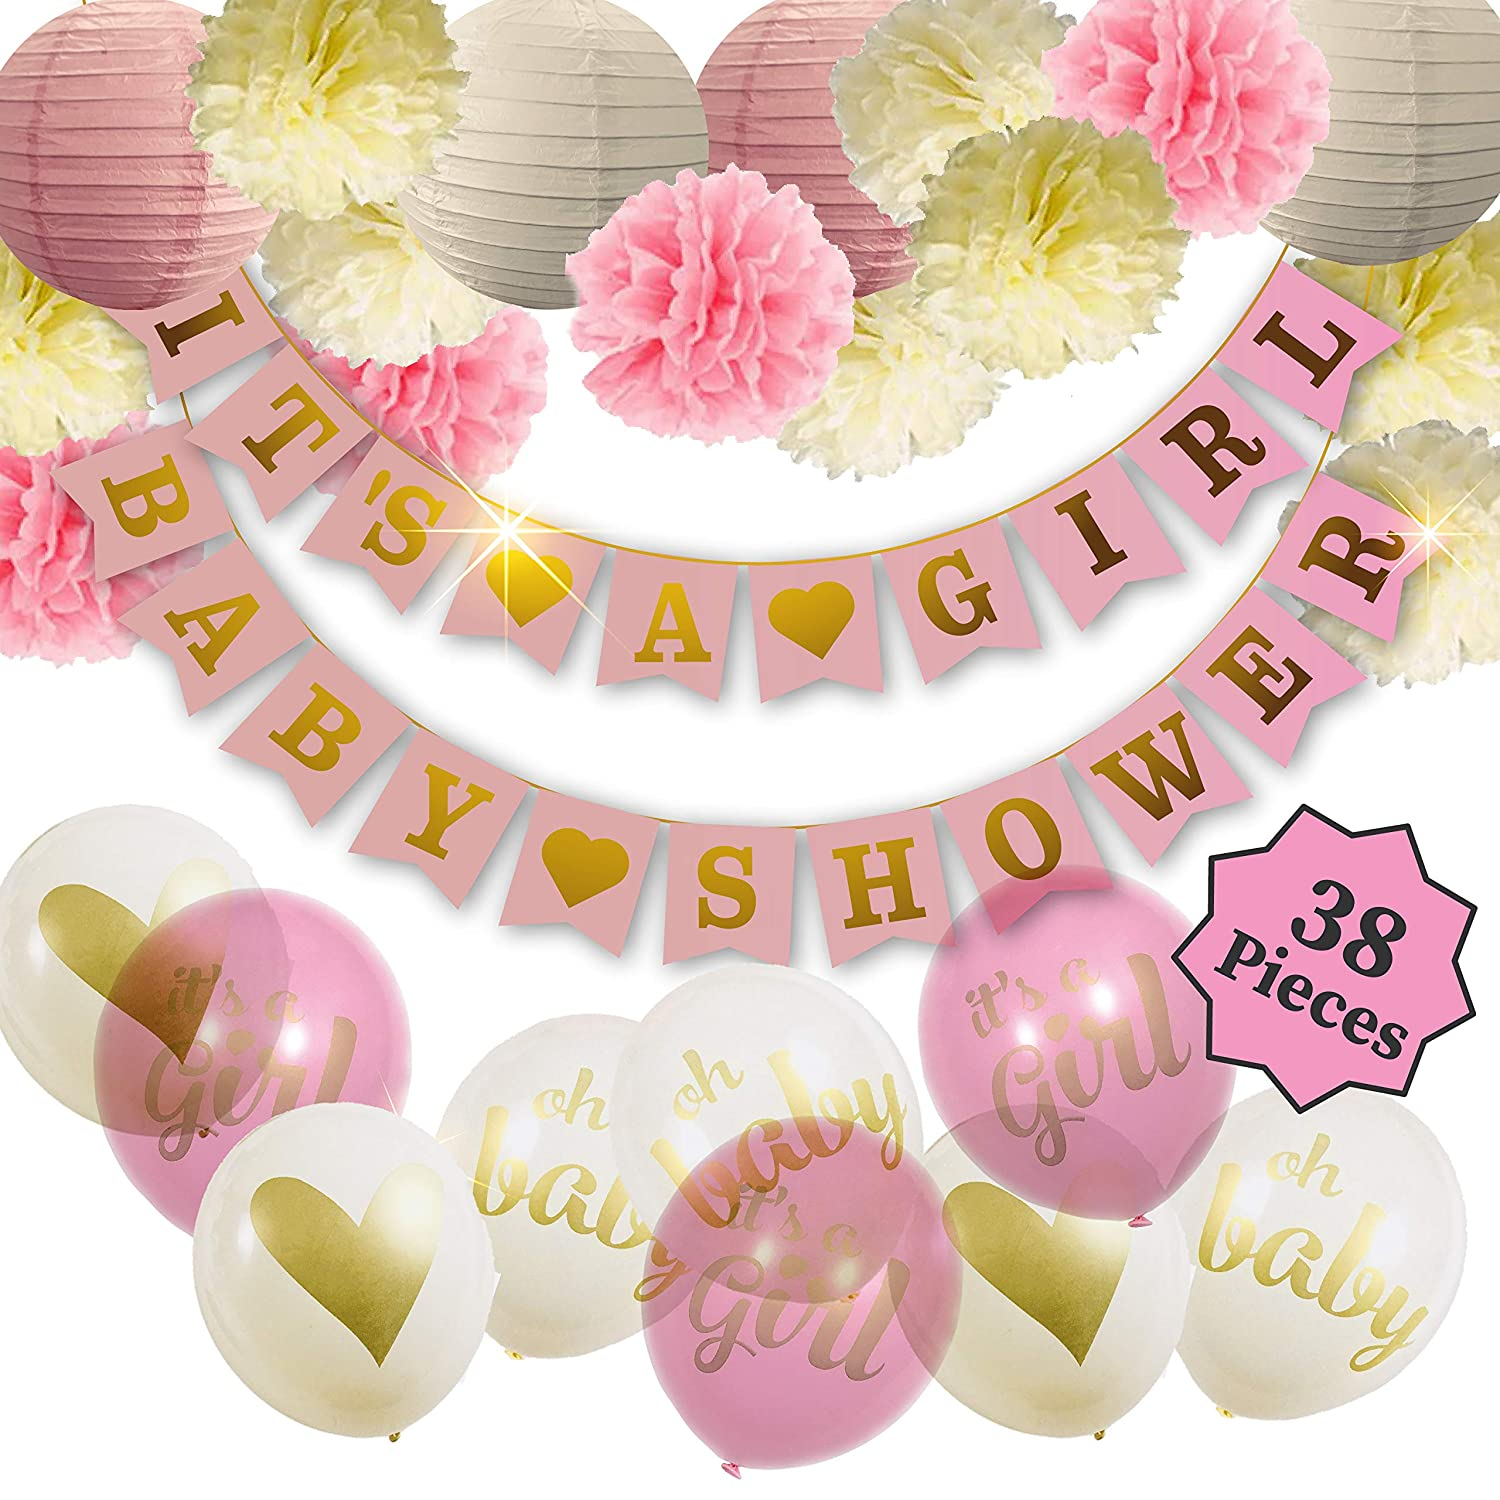 8824307676a56 Baby Shower Decorations For Girl - Girl Baby Shower Decorations: It's a  Girl & Baby Shower Banner, Baby Girl Shower Decorations Kit with Banners,  ...